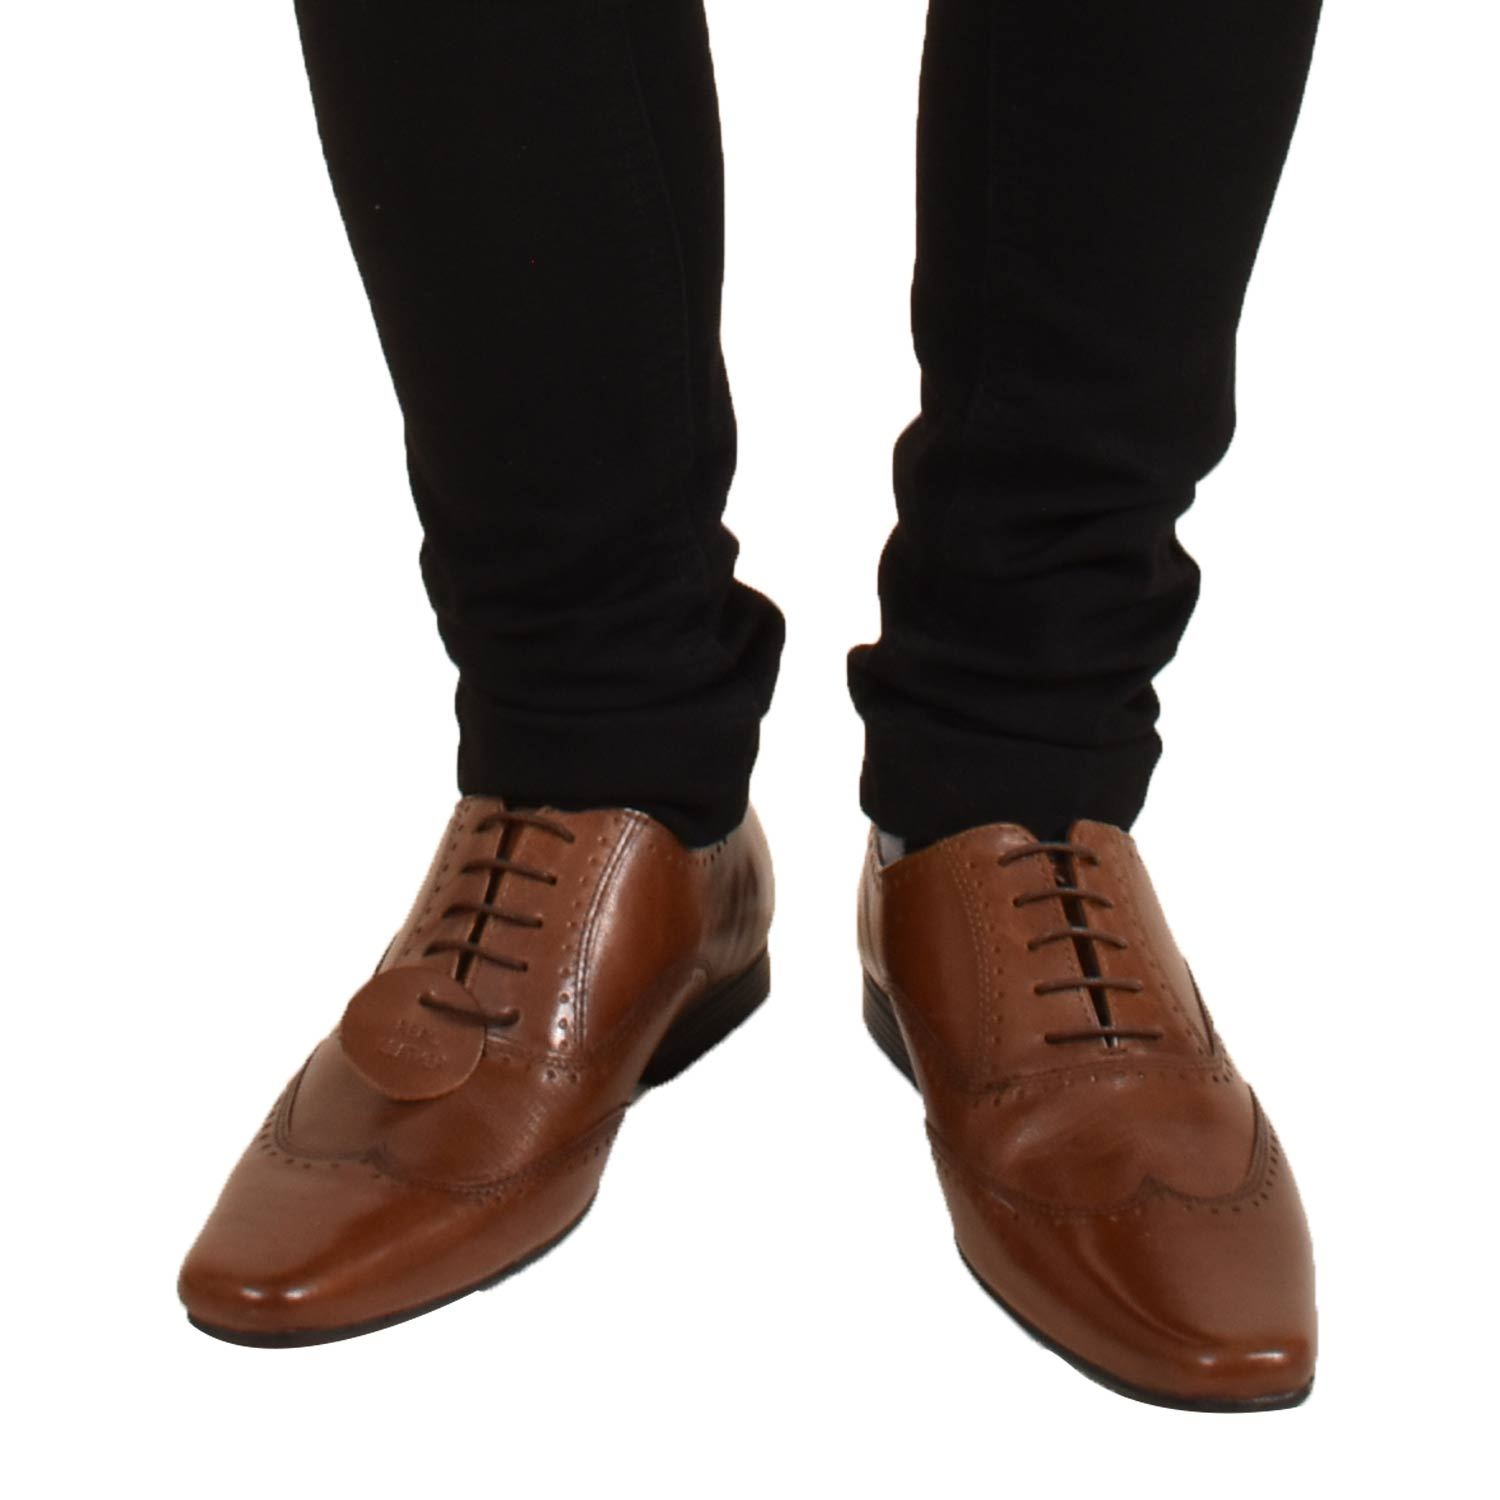 Mens-UK-Style-Leather-Lining-Formal-Office-Wedding-Smart-Work-Brogue-Shoes thumbnail 38